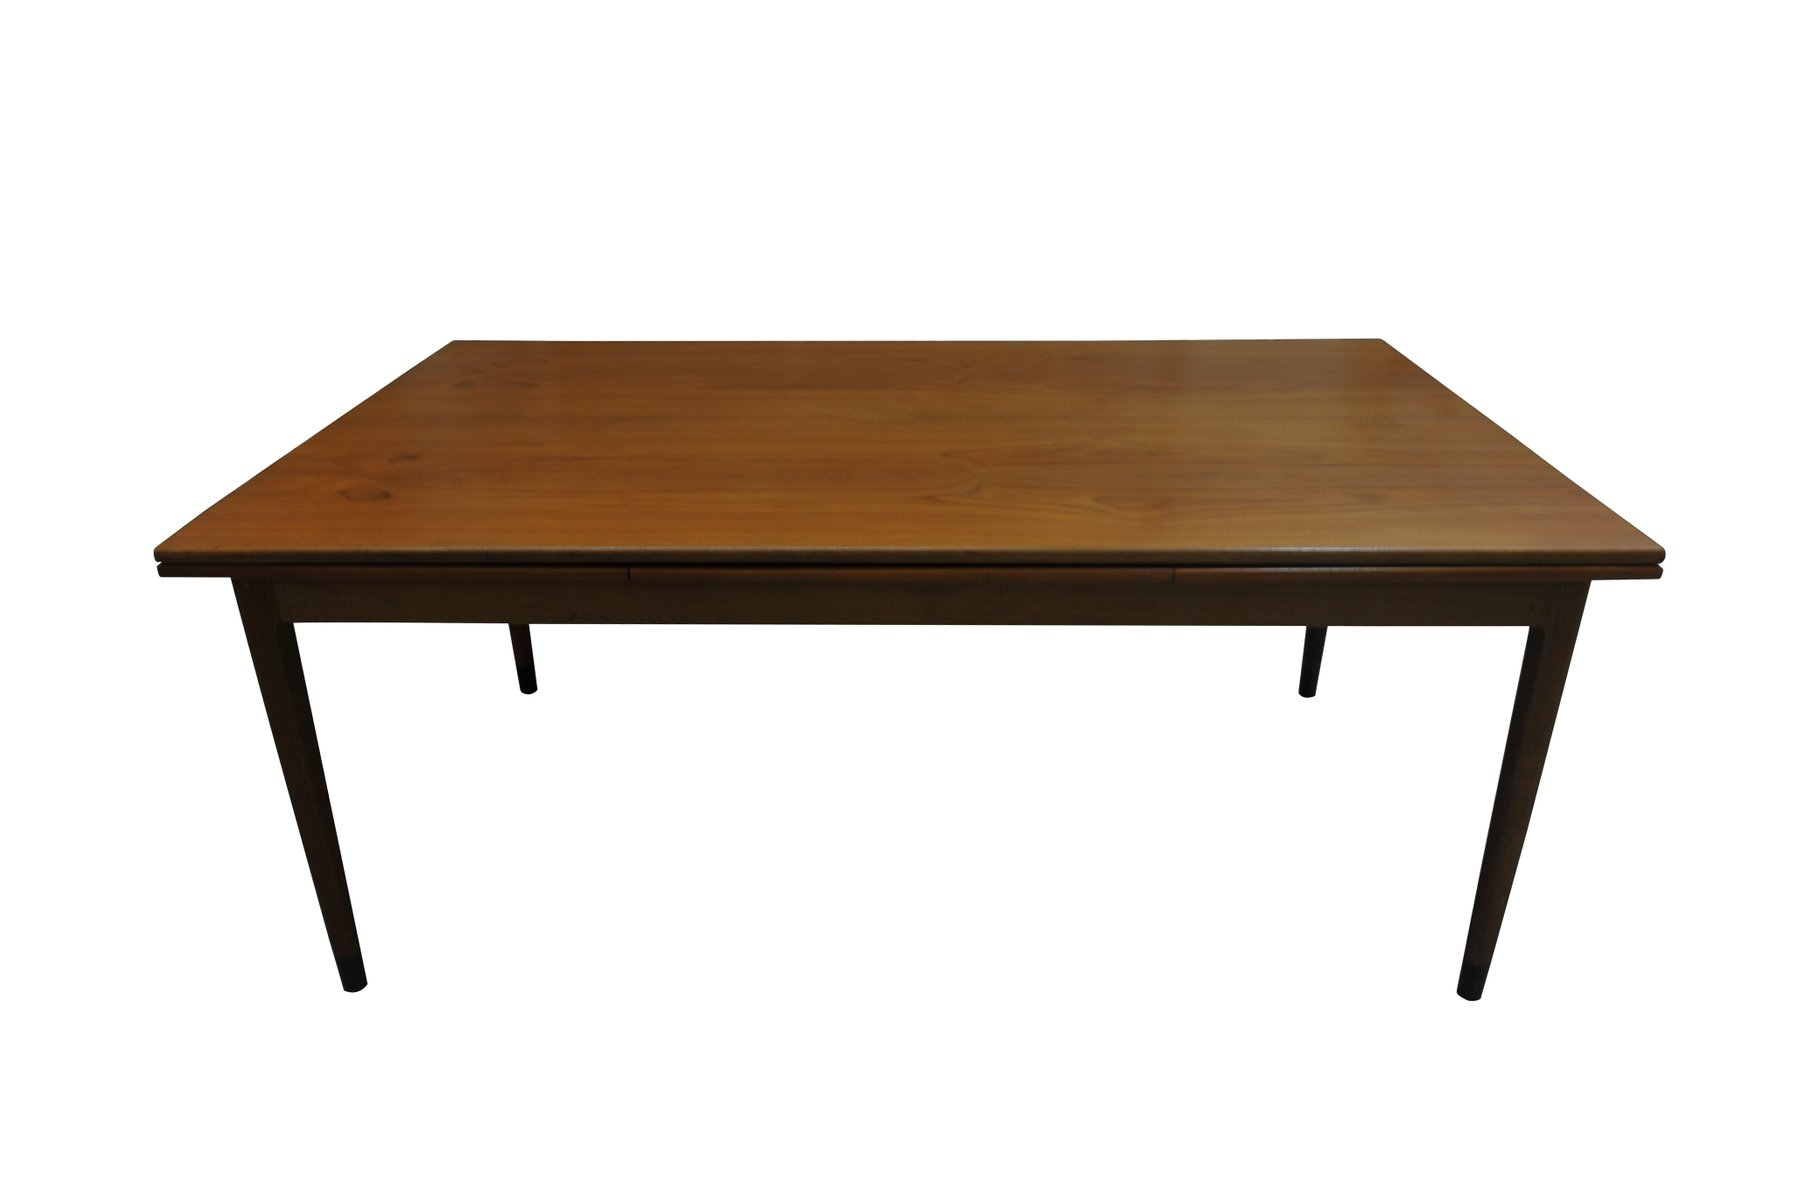 Vintage Teak Extendable Dining Table With Black Feet By Niels Otto